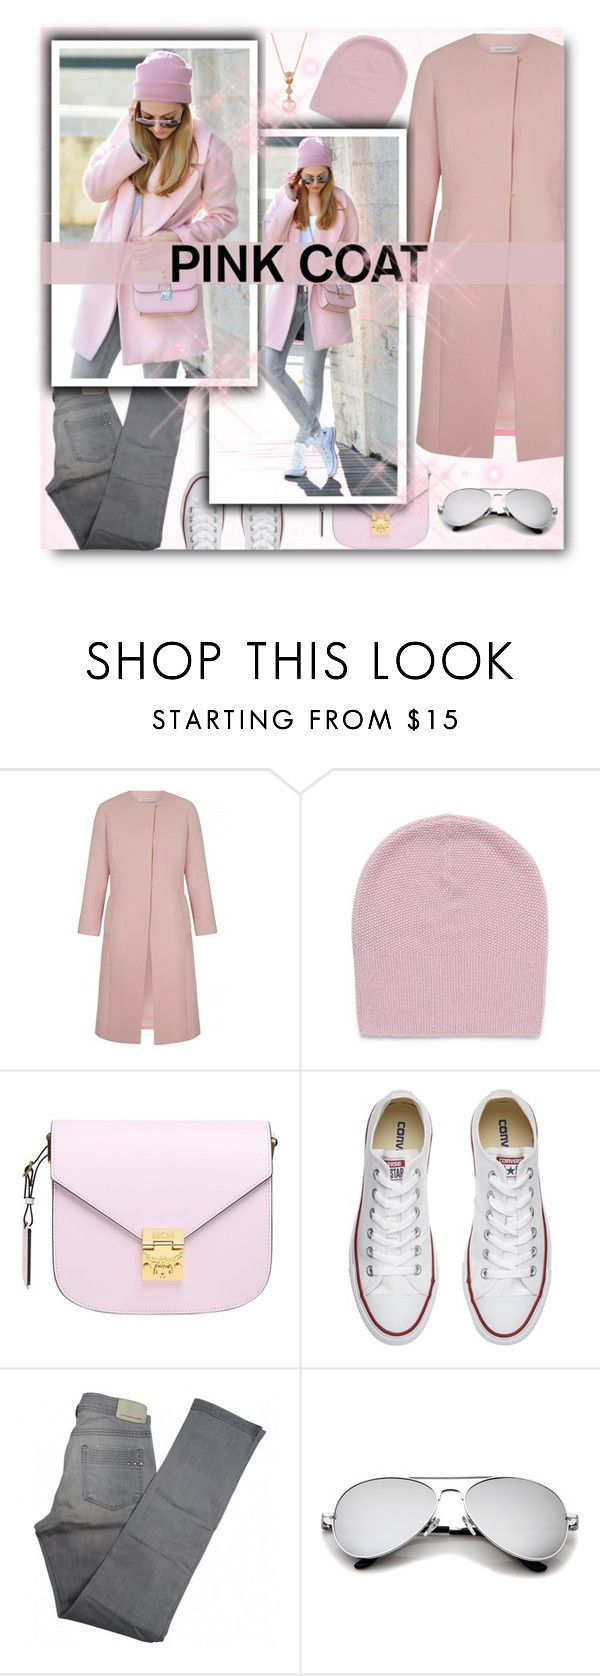 """Hey Girl: Pretty Pink Coat"" by matildiwinky ❤ liked on Polyvore featuring ISH, MCM, Converse, Comptoir Des Cotonniers and LE VIAN"